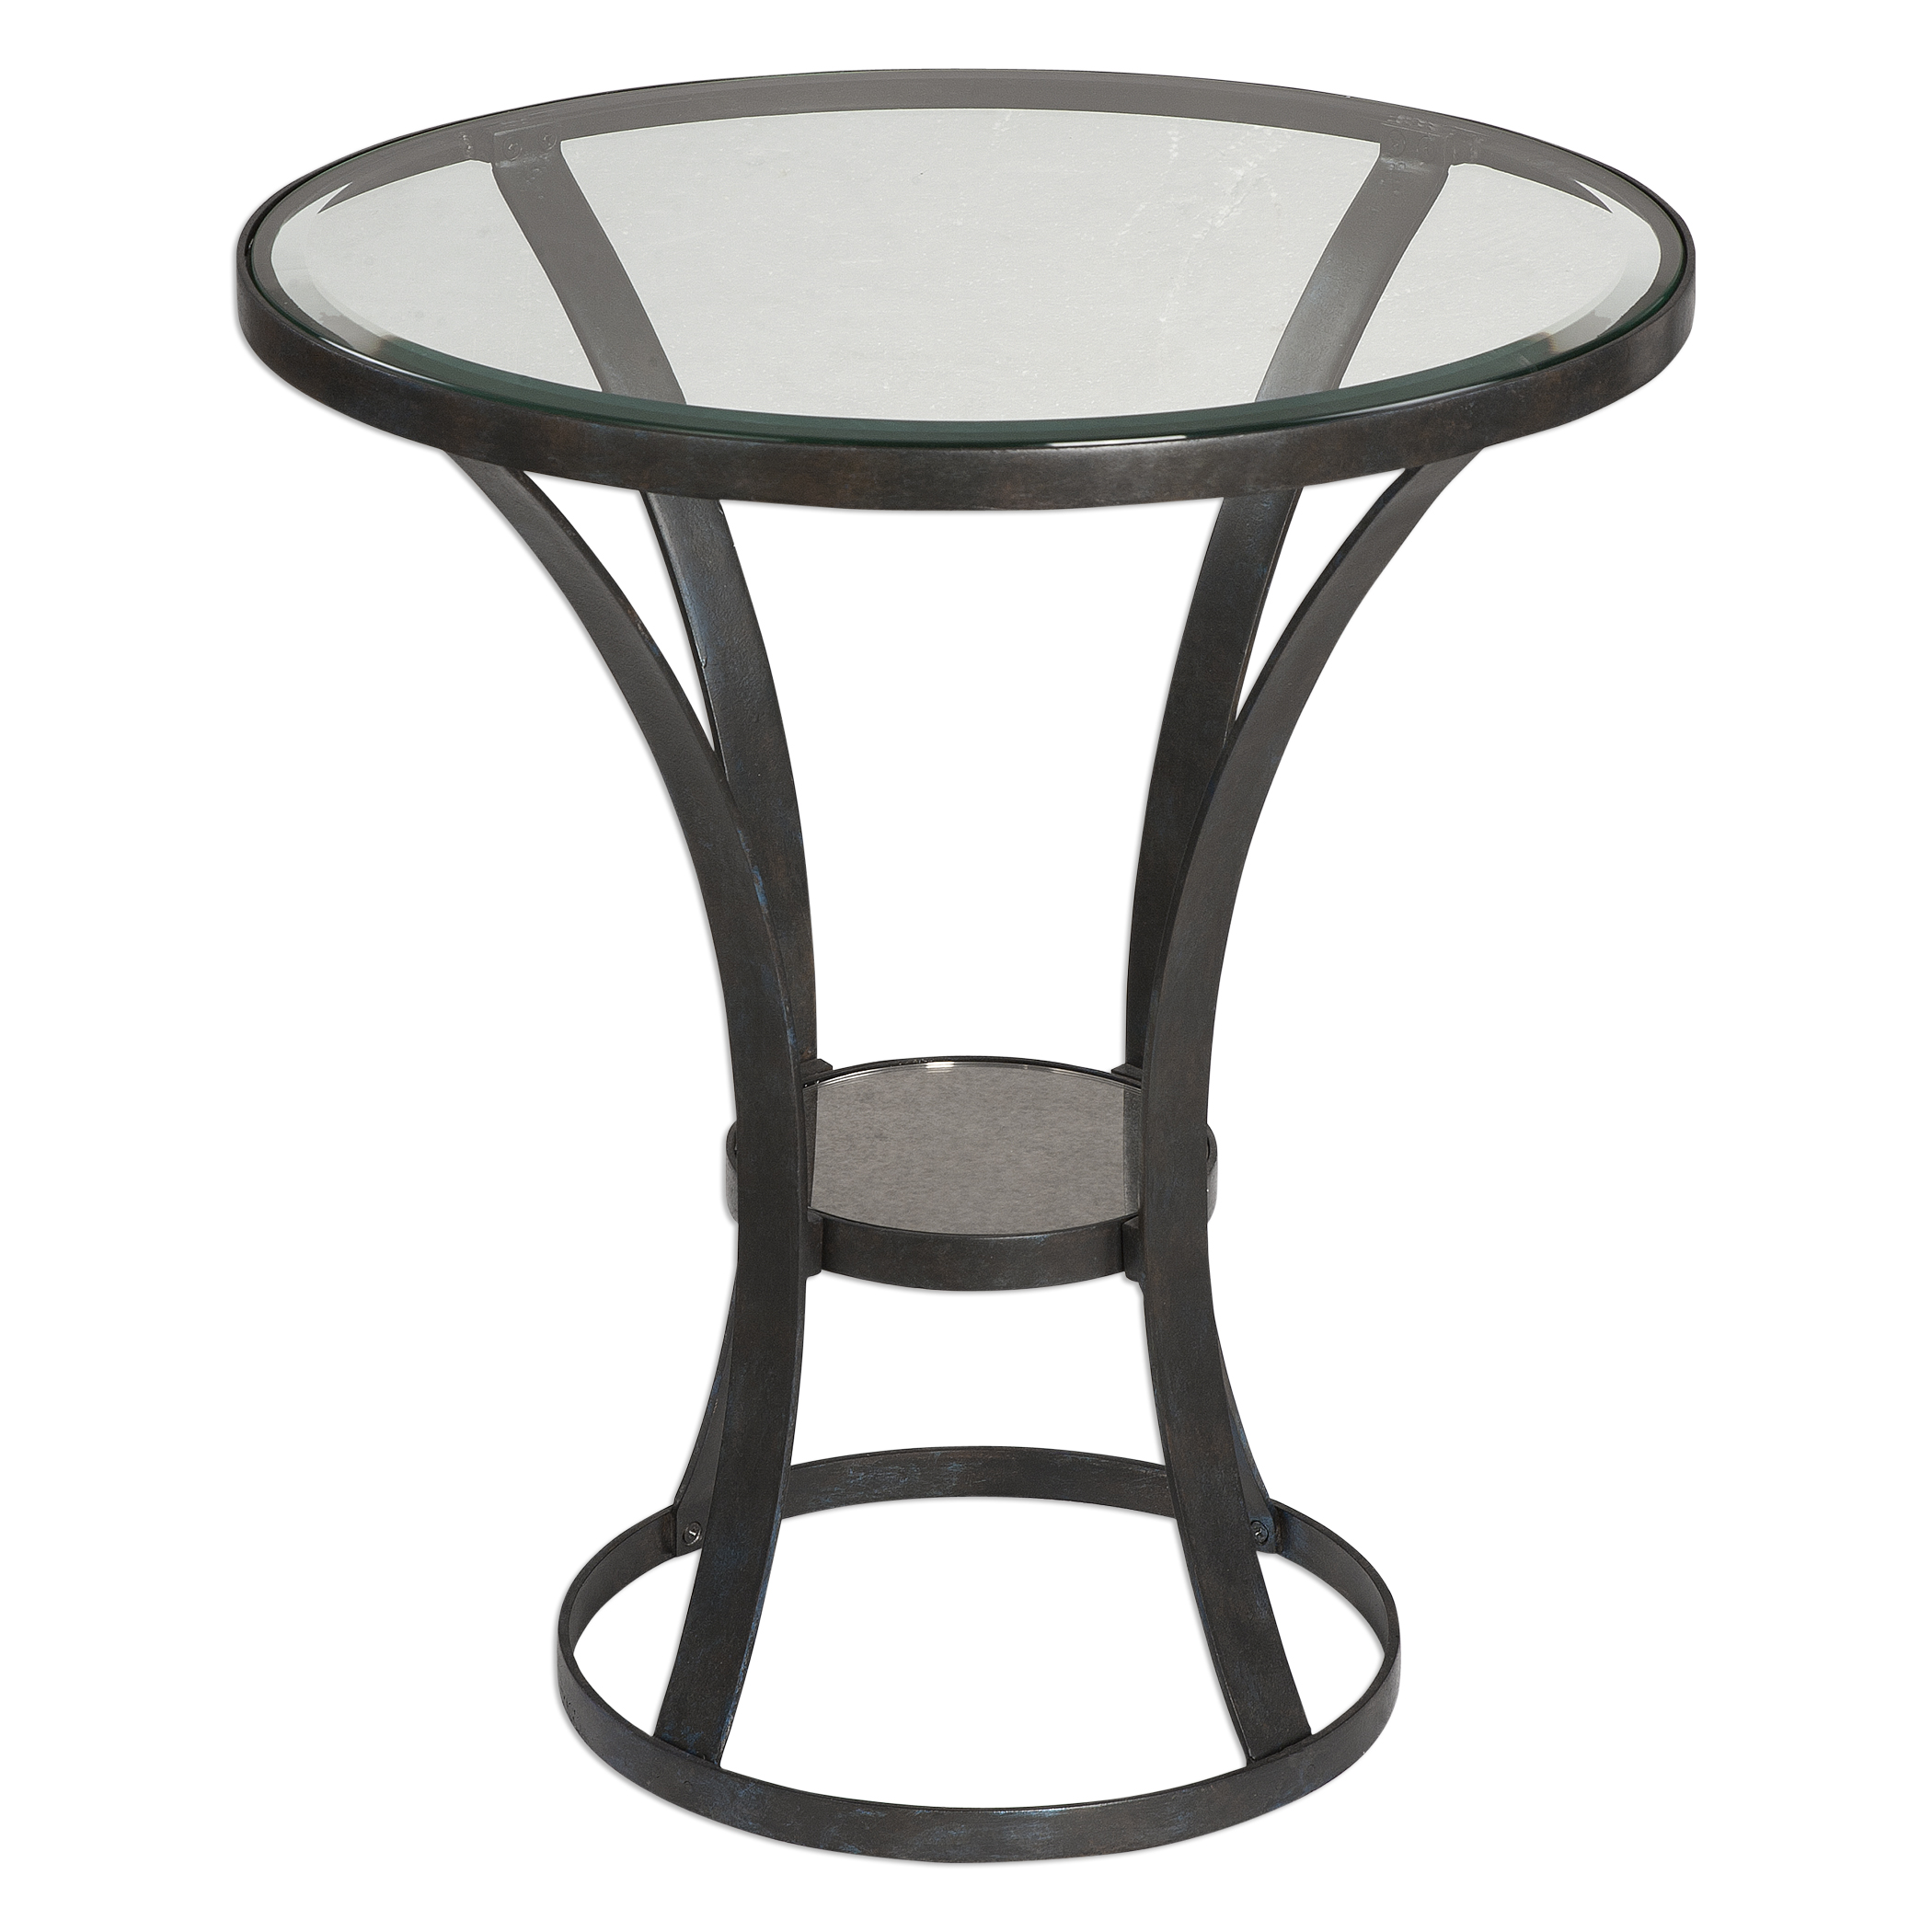 Uttermost Accent Furniture Tomasso Iron Accent Table - Item Number: 24649